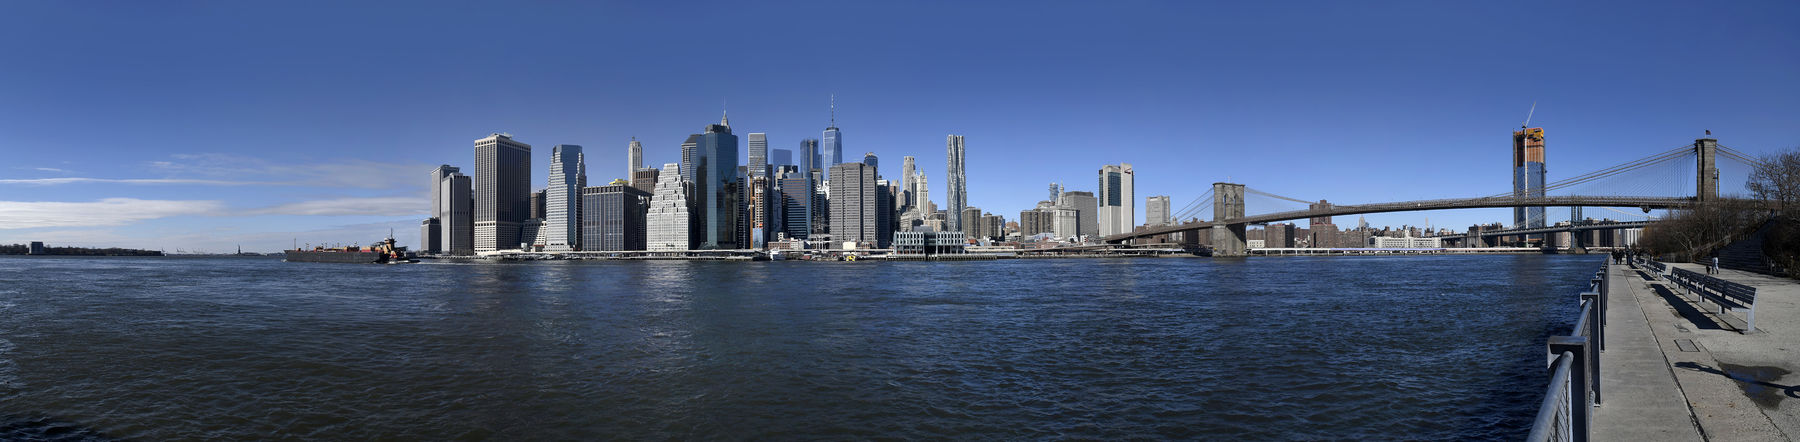 NYC_-_Brooklyn_Bridge_Skyline_Pan